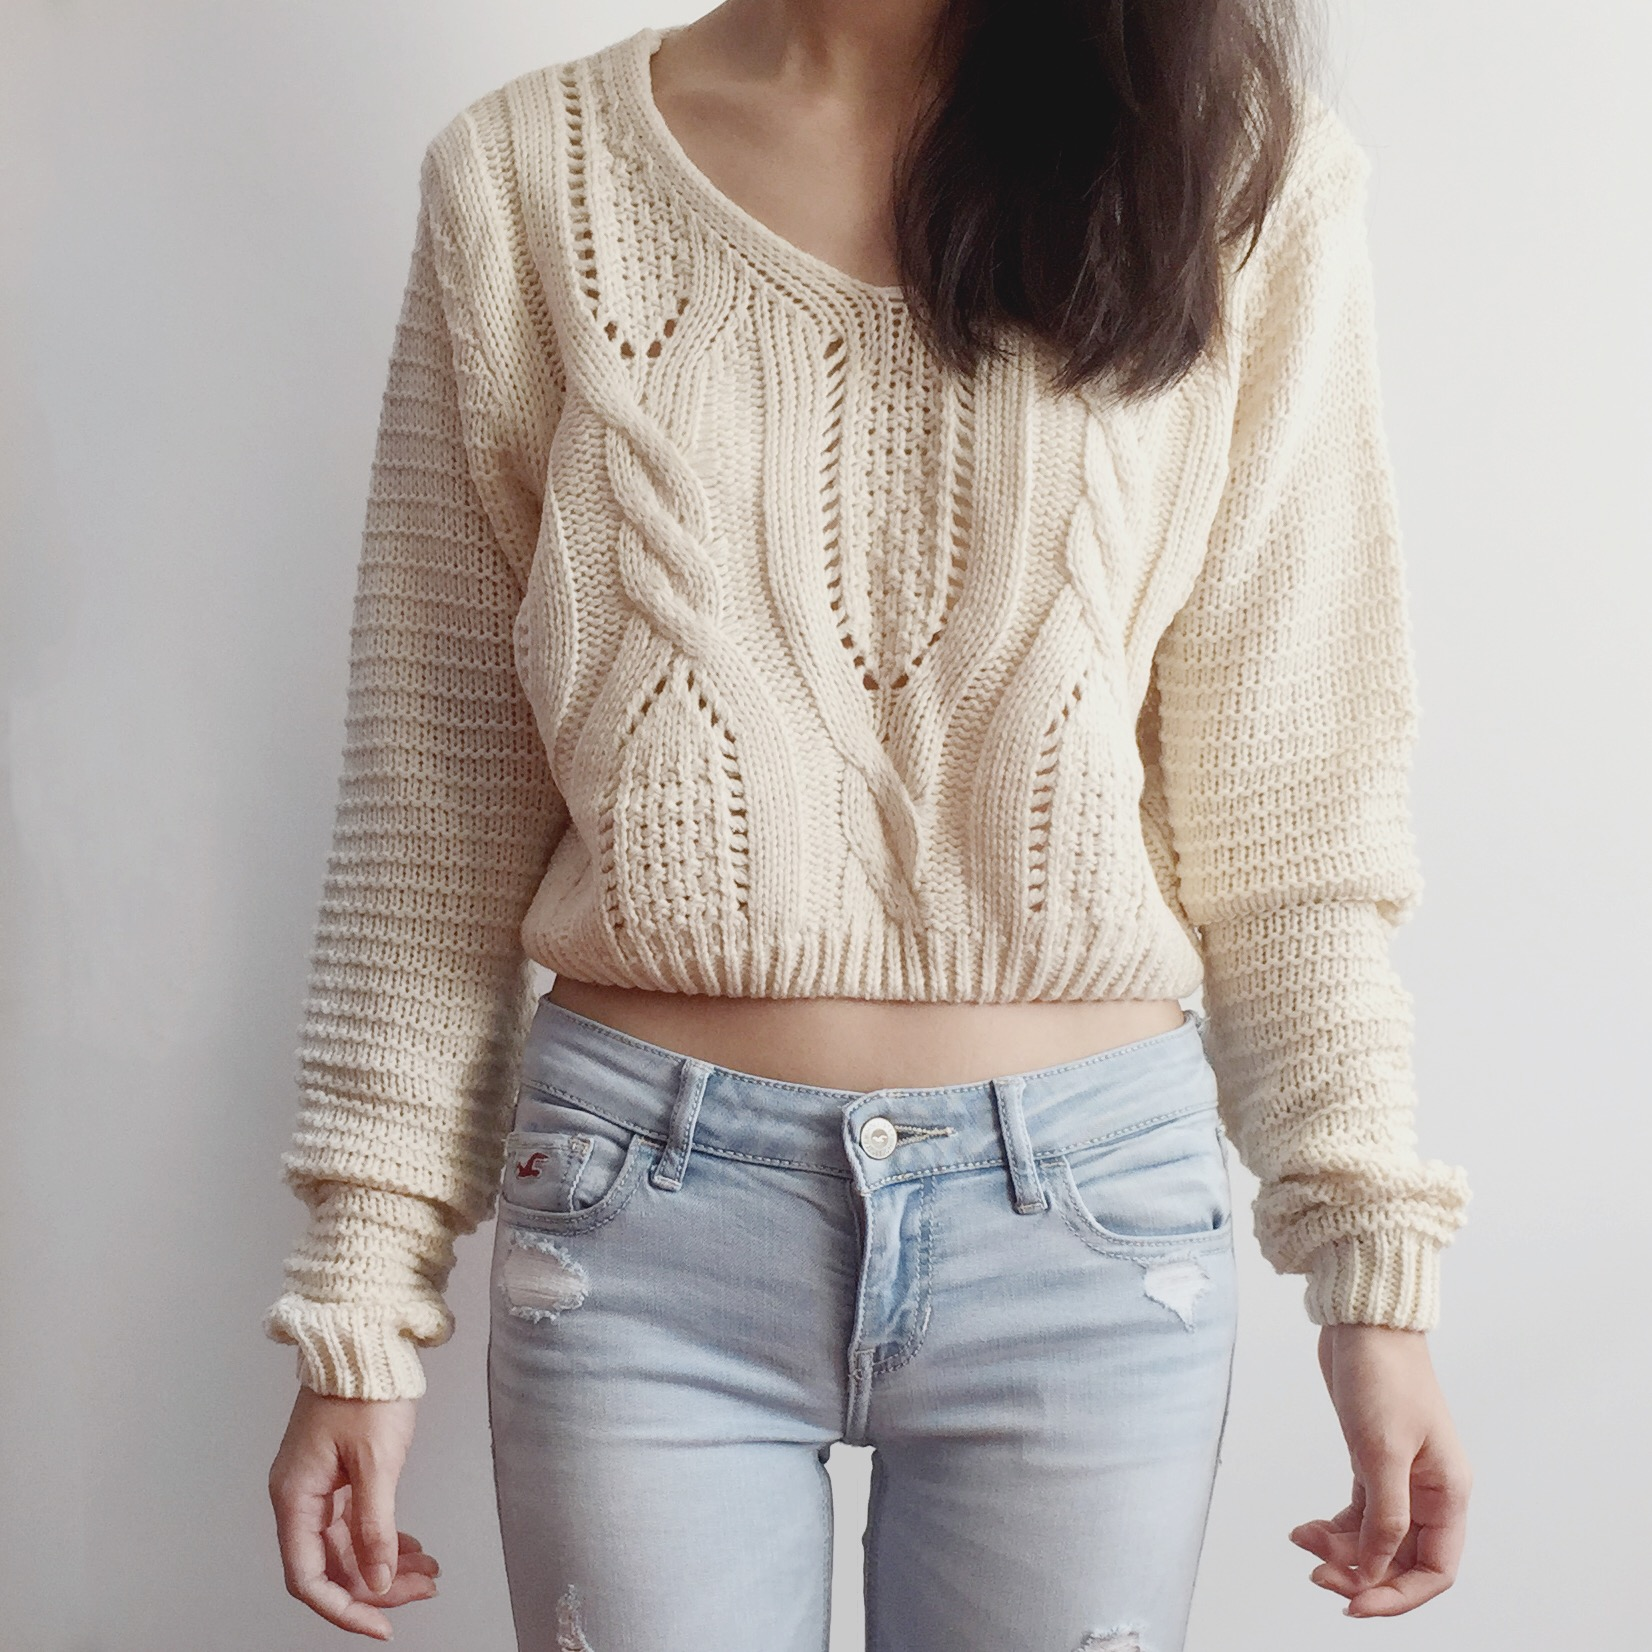 Lace Up Back Cropped Knit Sweater (Cream)